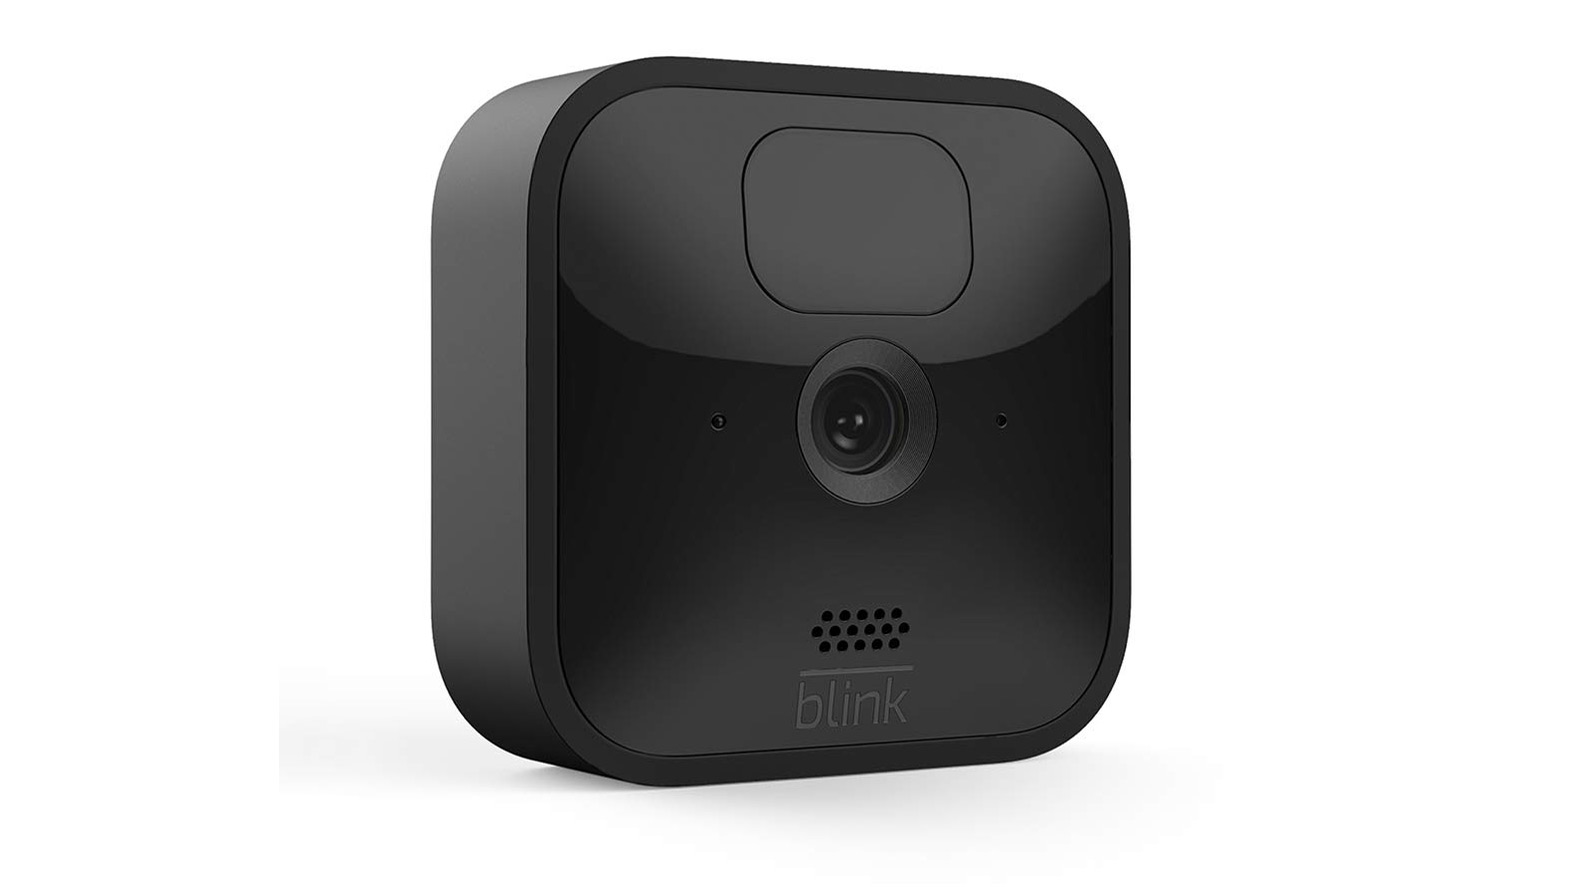 The Blink Outdoor camera on a white background